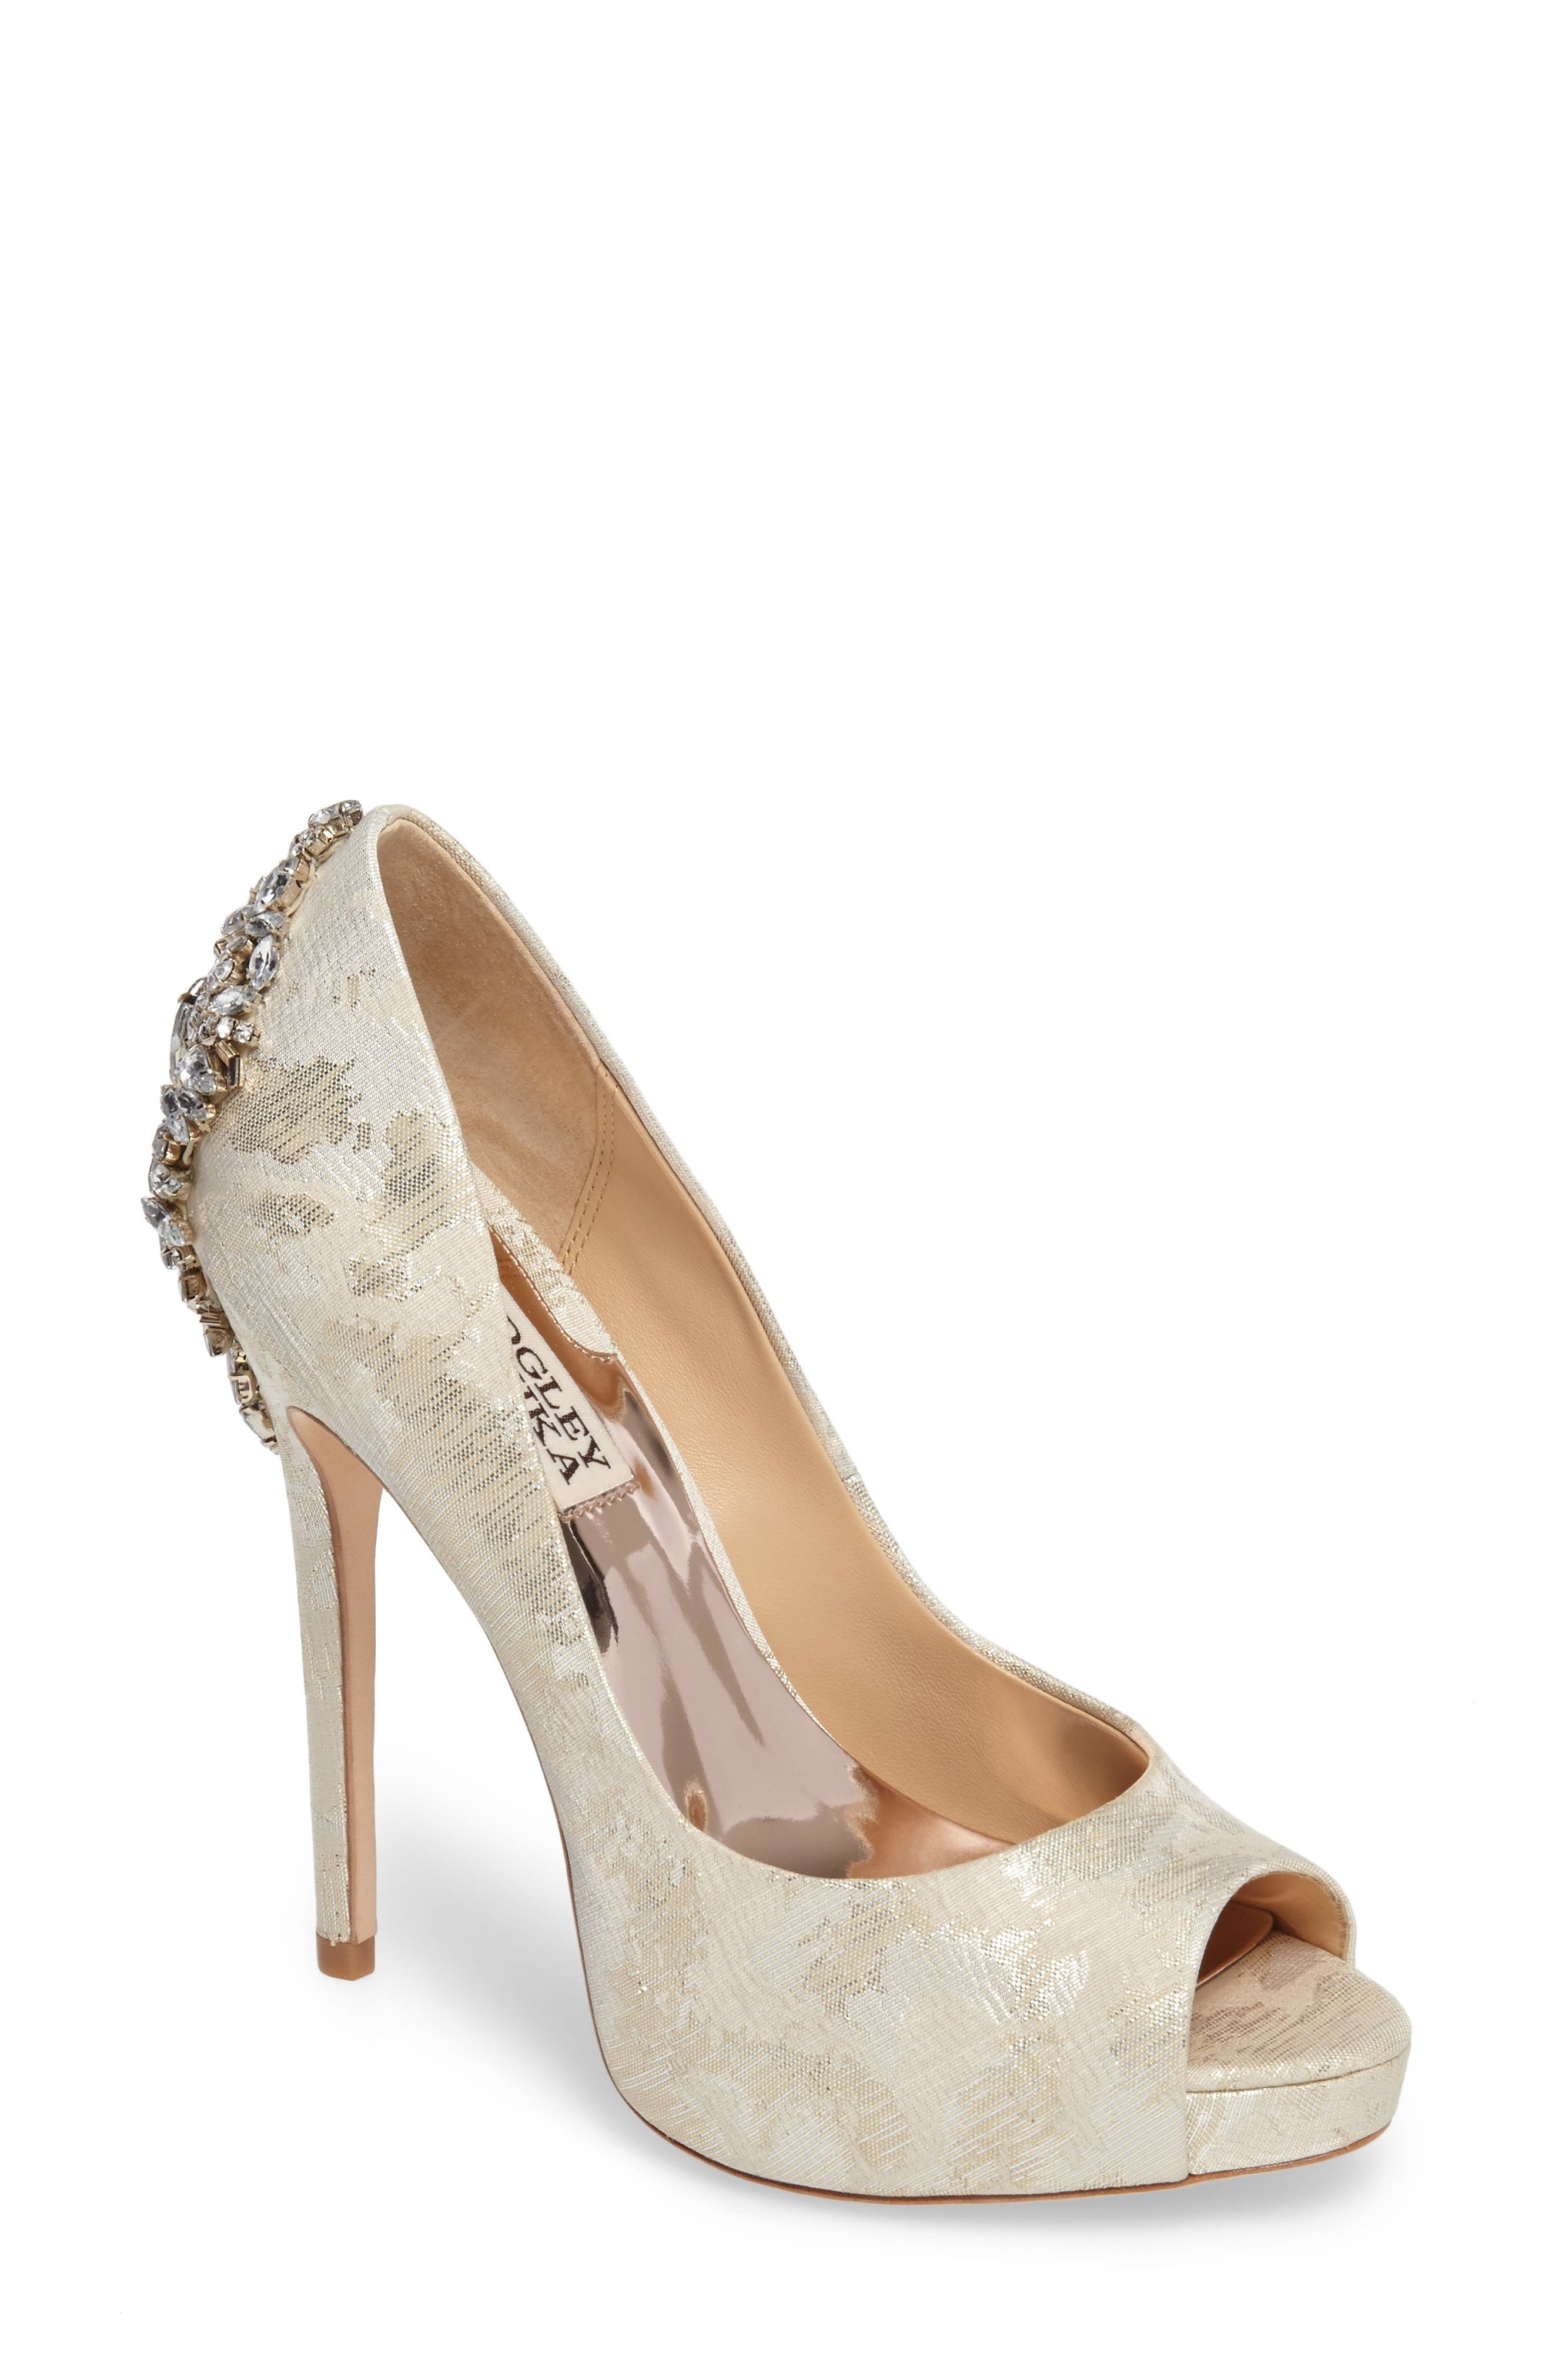 Valentino sandals shoes price - Valentino Sandals Shoes Price 28